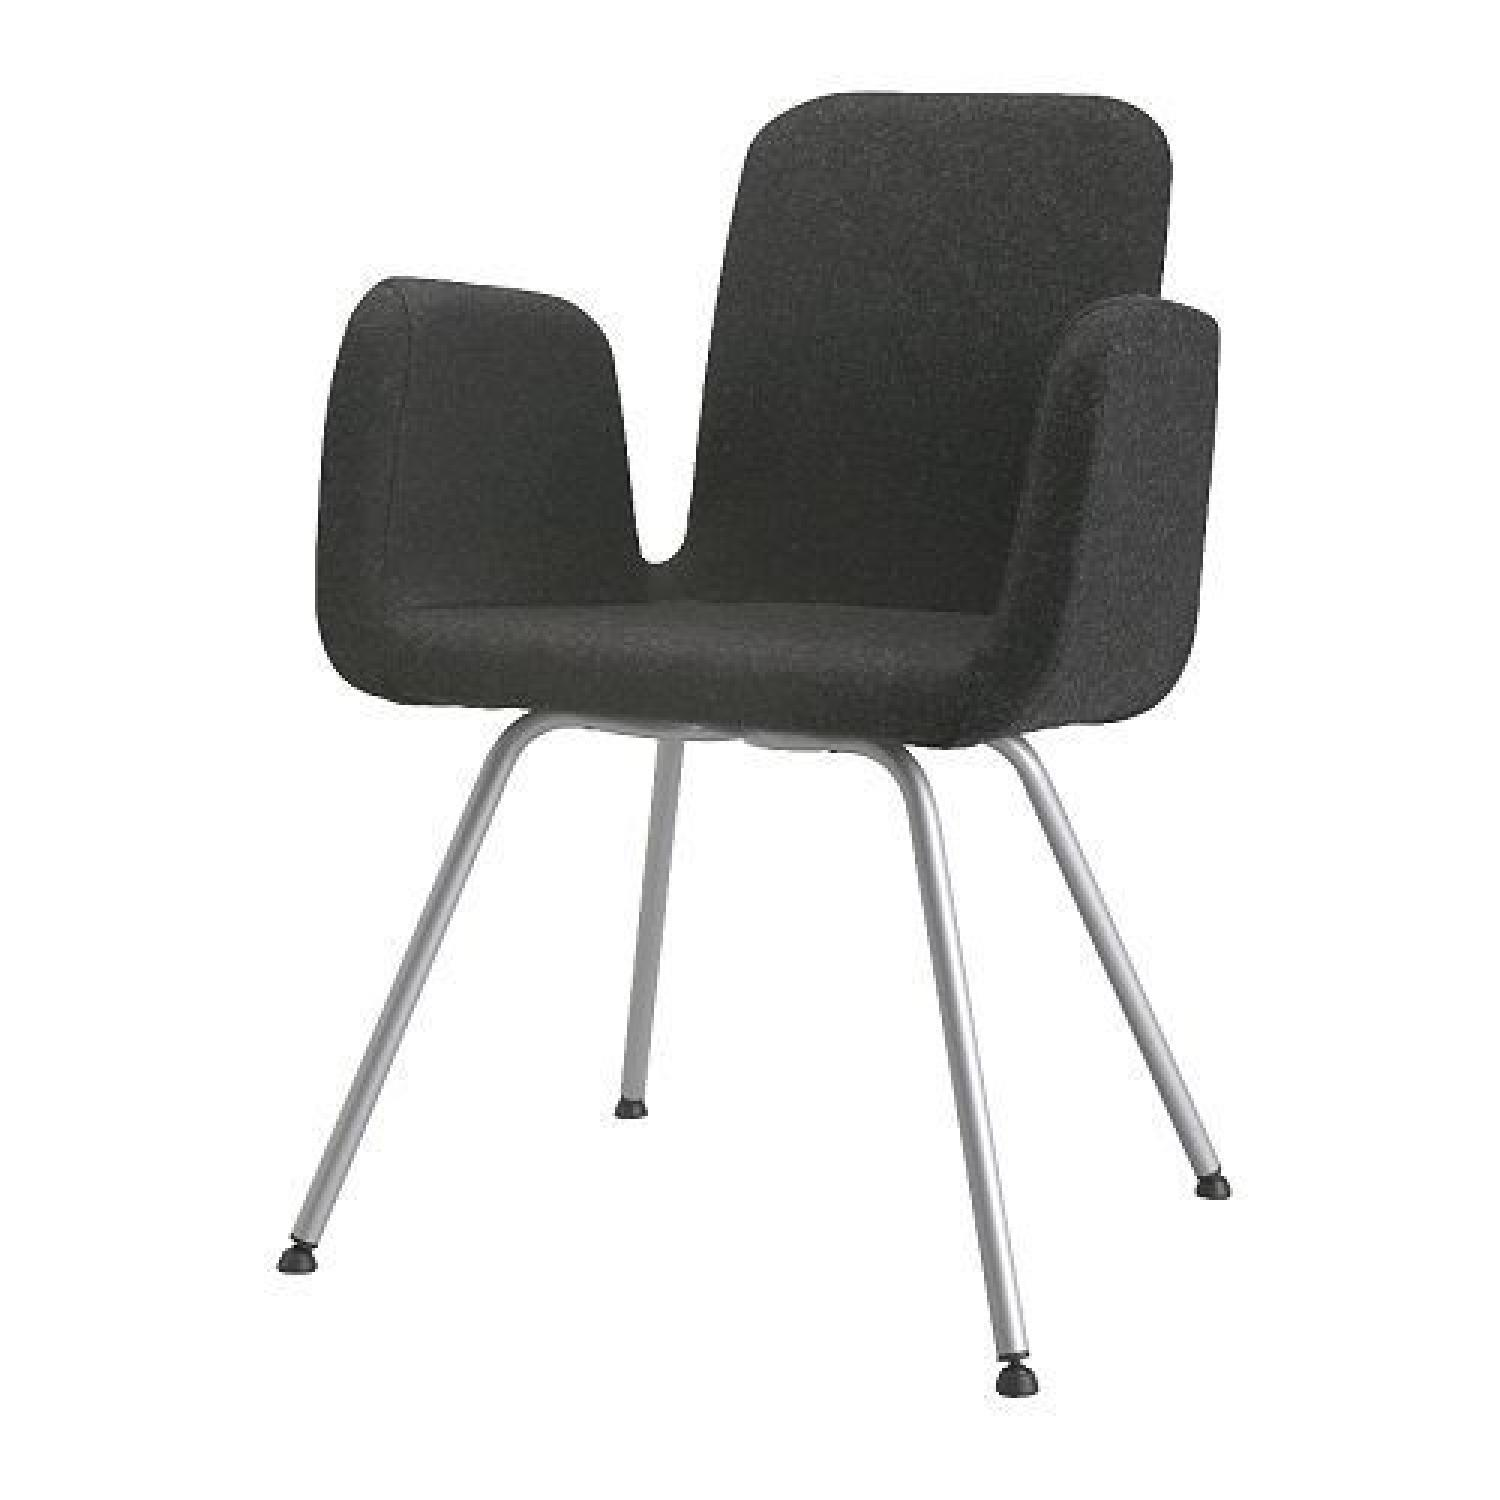 office side chair dining table and chairs argos ikea charcoal grey wool felt aptdeco per set of 6